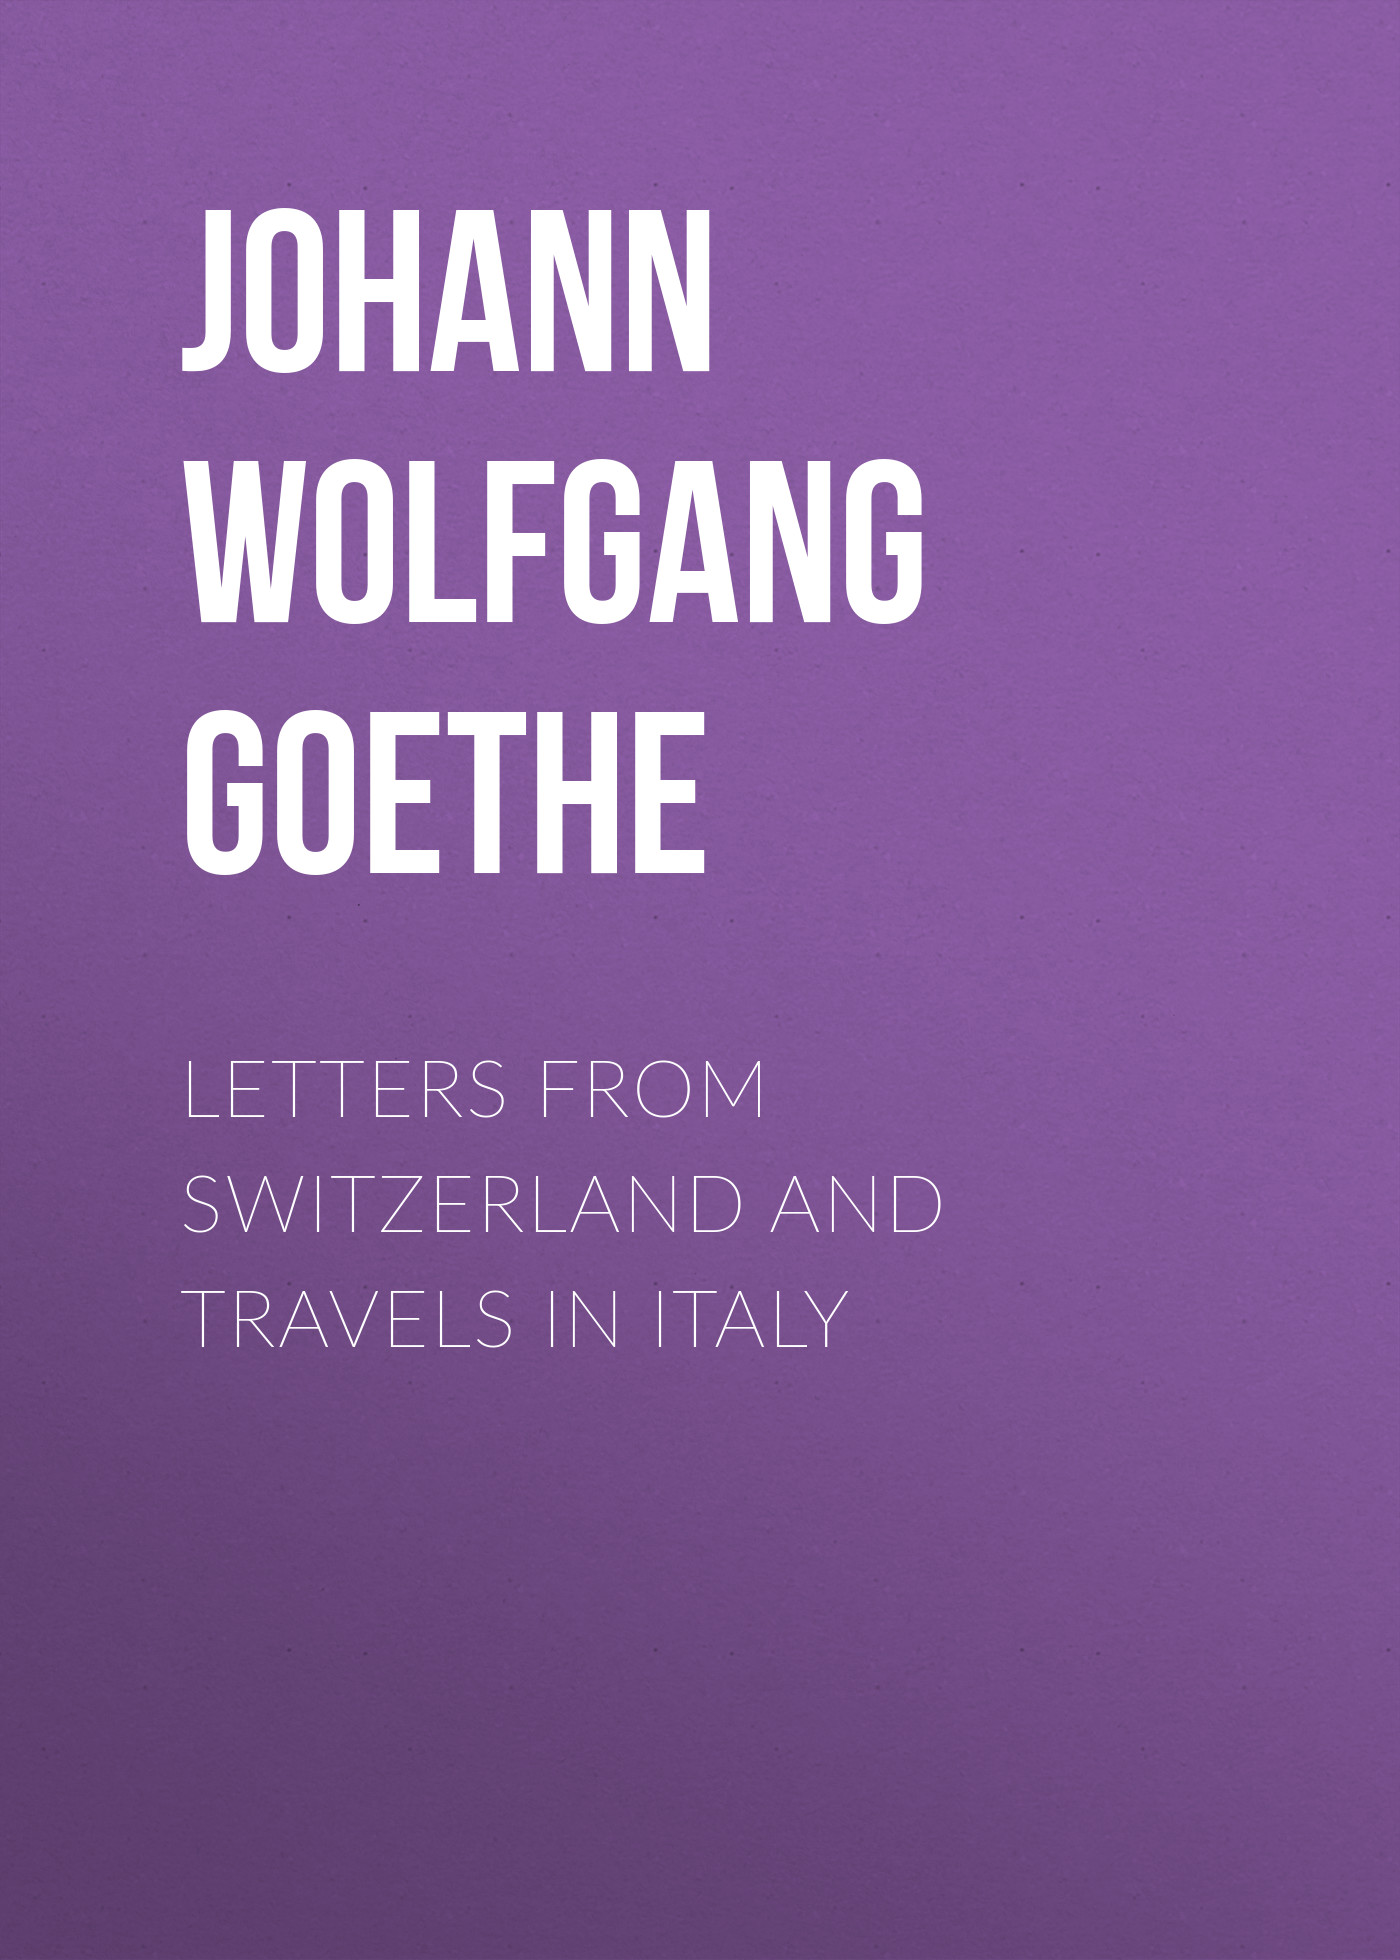 Иоганн Вольфганг фон Гёте Letters from Switzerland and Travels in Italy карамель леденцовая halls со вкусом клубники 25г 12 уп